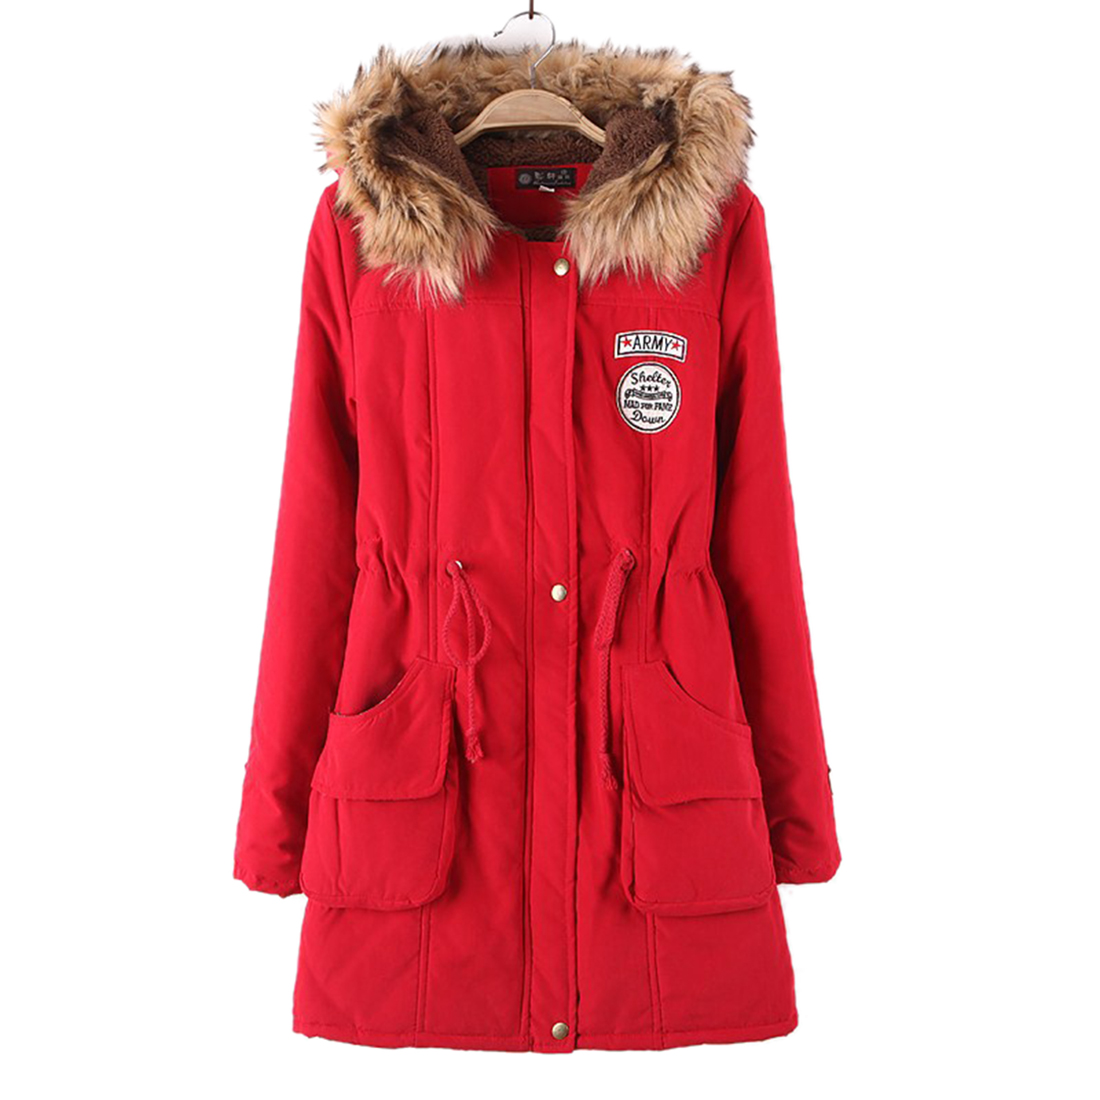 New Women Winter Warm Thicken Jacket Coat Female Autumn Hooded Cotton Fur Basic Jacket Outerwear Slim Long Ladies Casaco Feminin